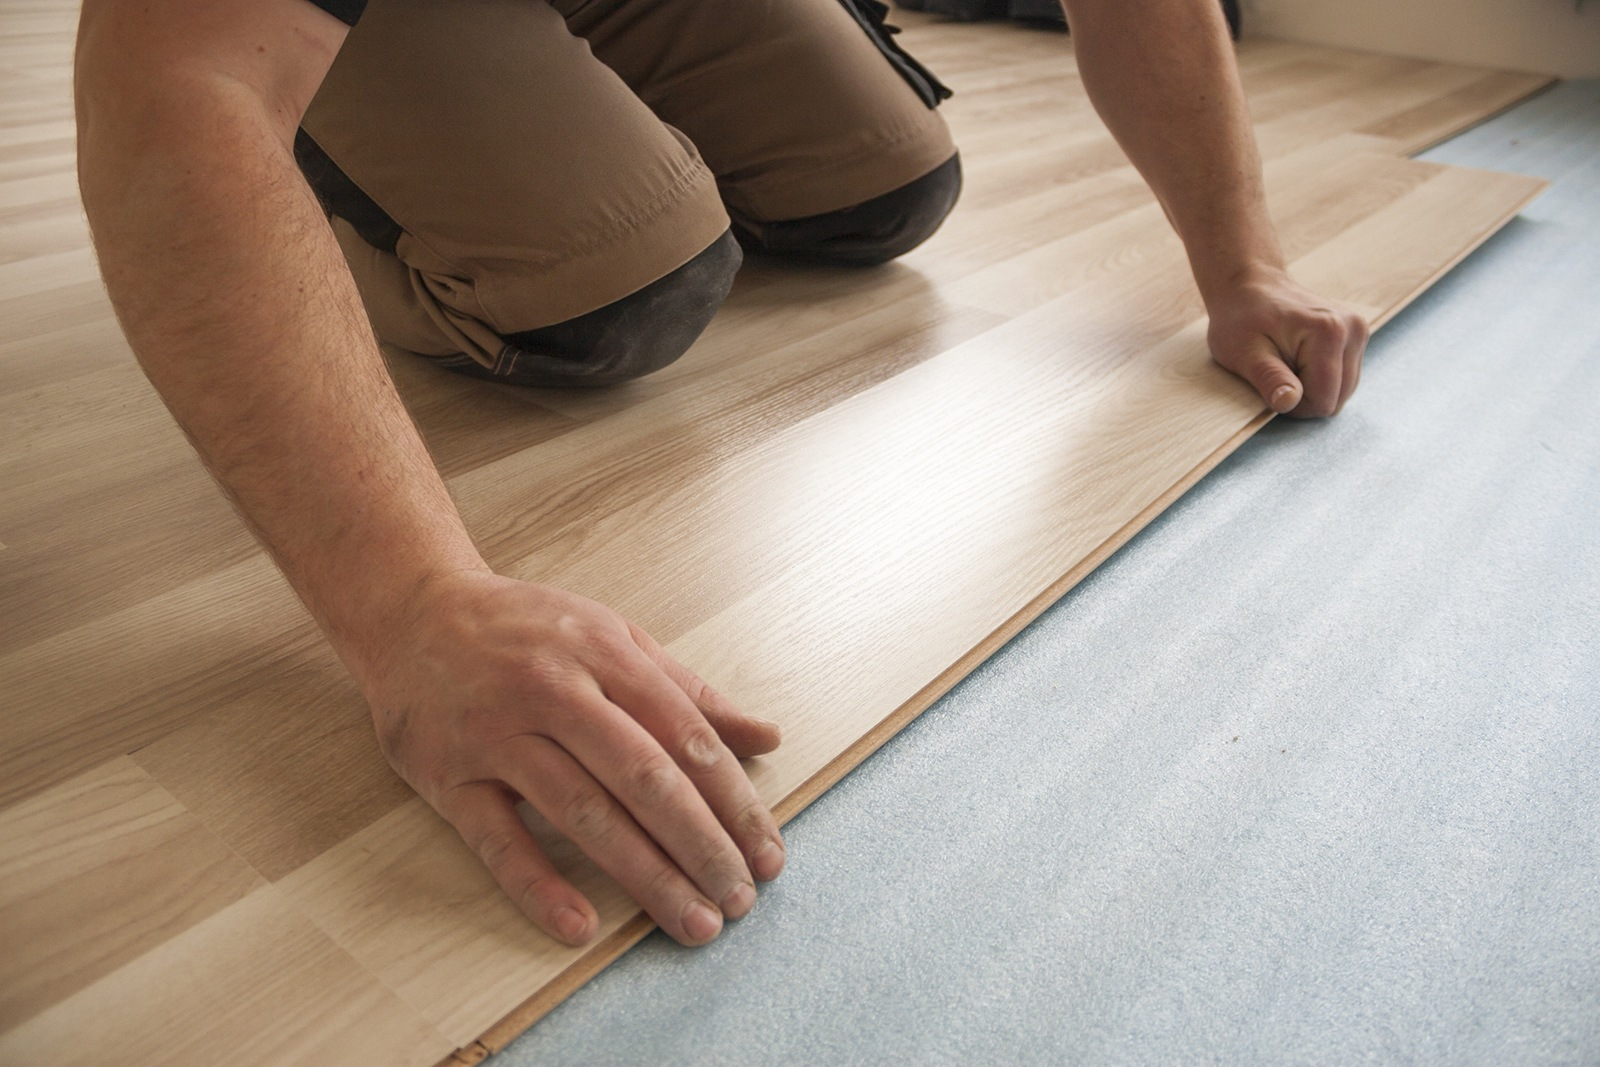 Over 10 Years Of Experience And Expertise In Flooring Trademark Process Sets Us Apart From Our Competition